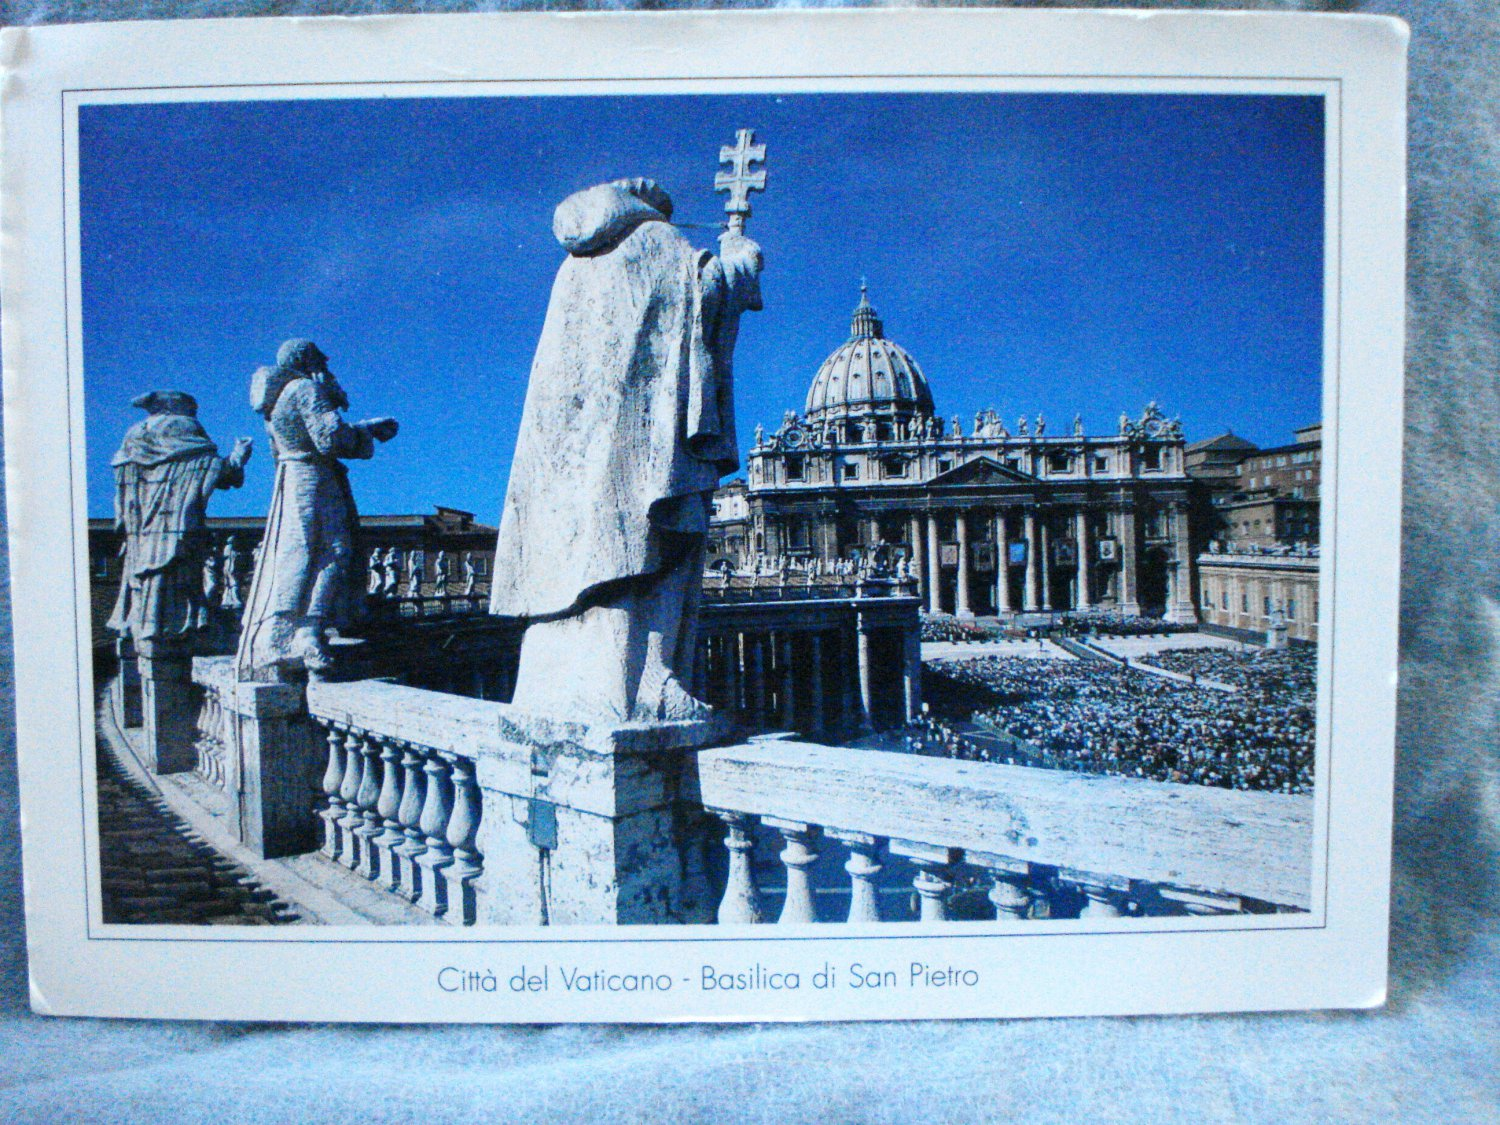 St. Peter's Basilica Vatican City Rome souvenir postcard dramatic view pre-owned unused 1519vf